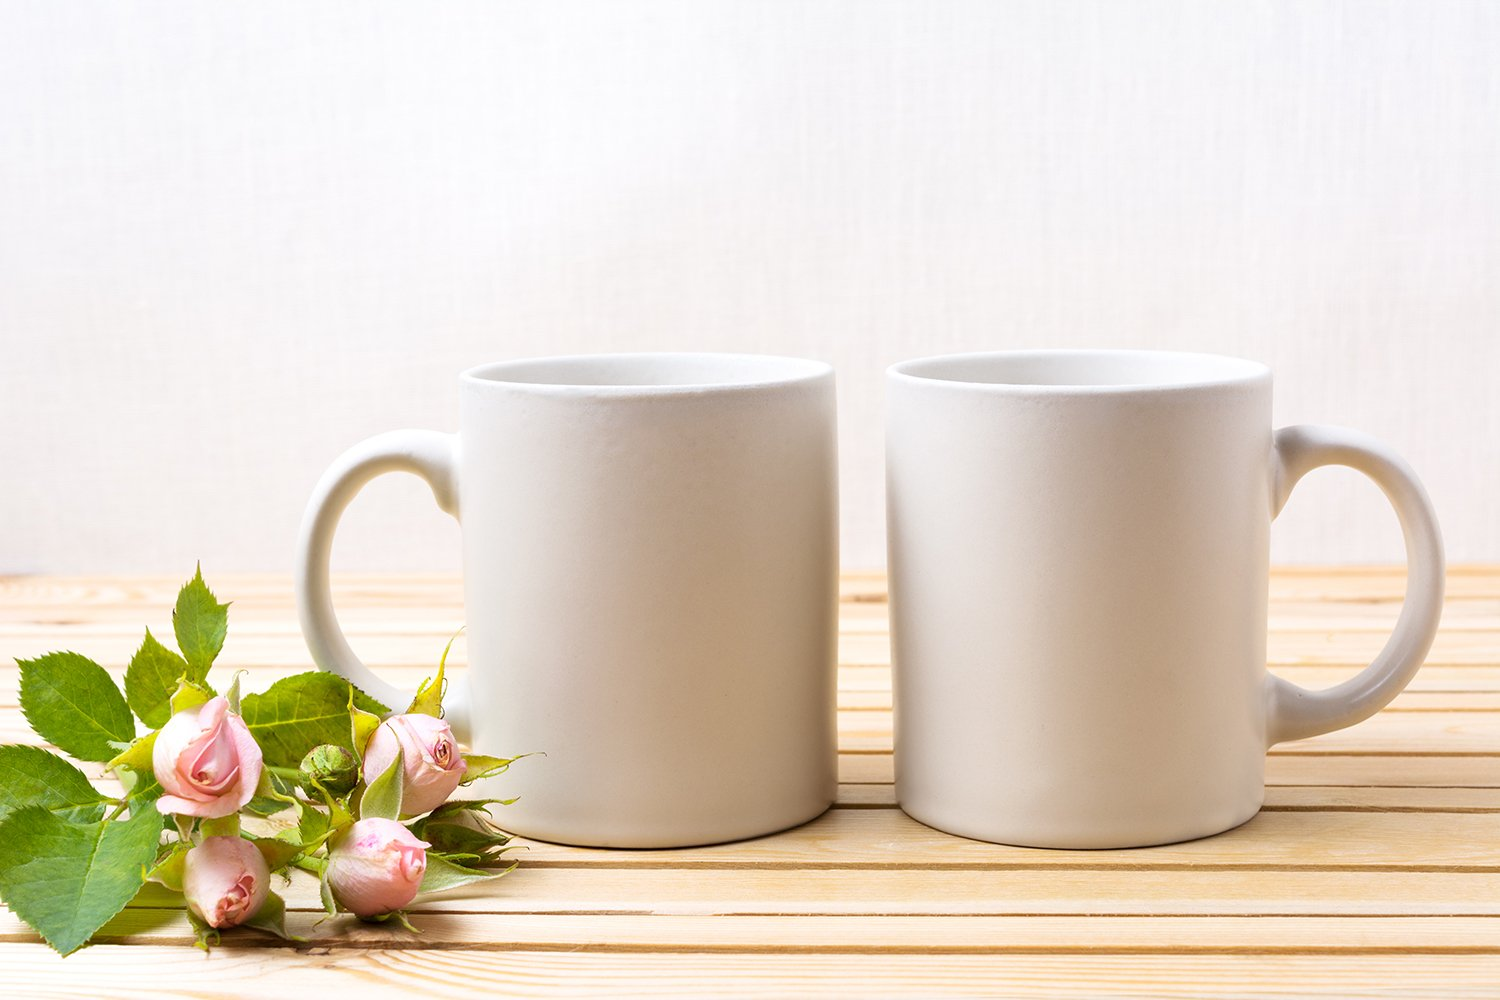 Two white coffee mug mockup with tender pale pink roses example image 2